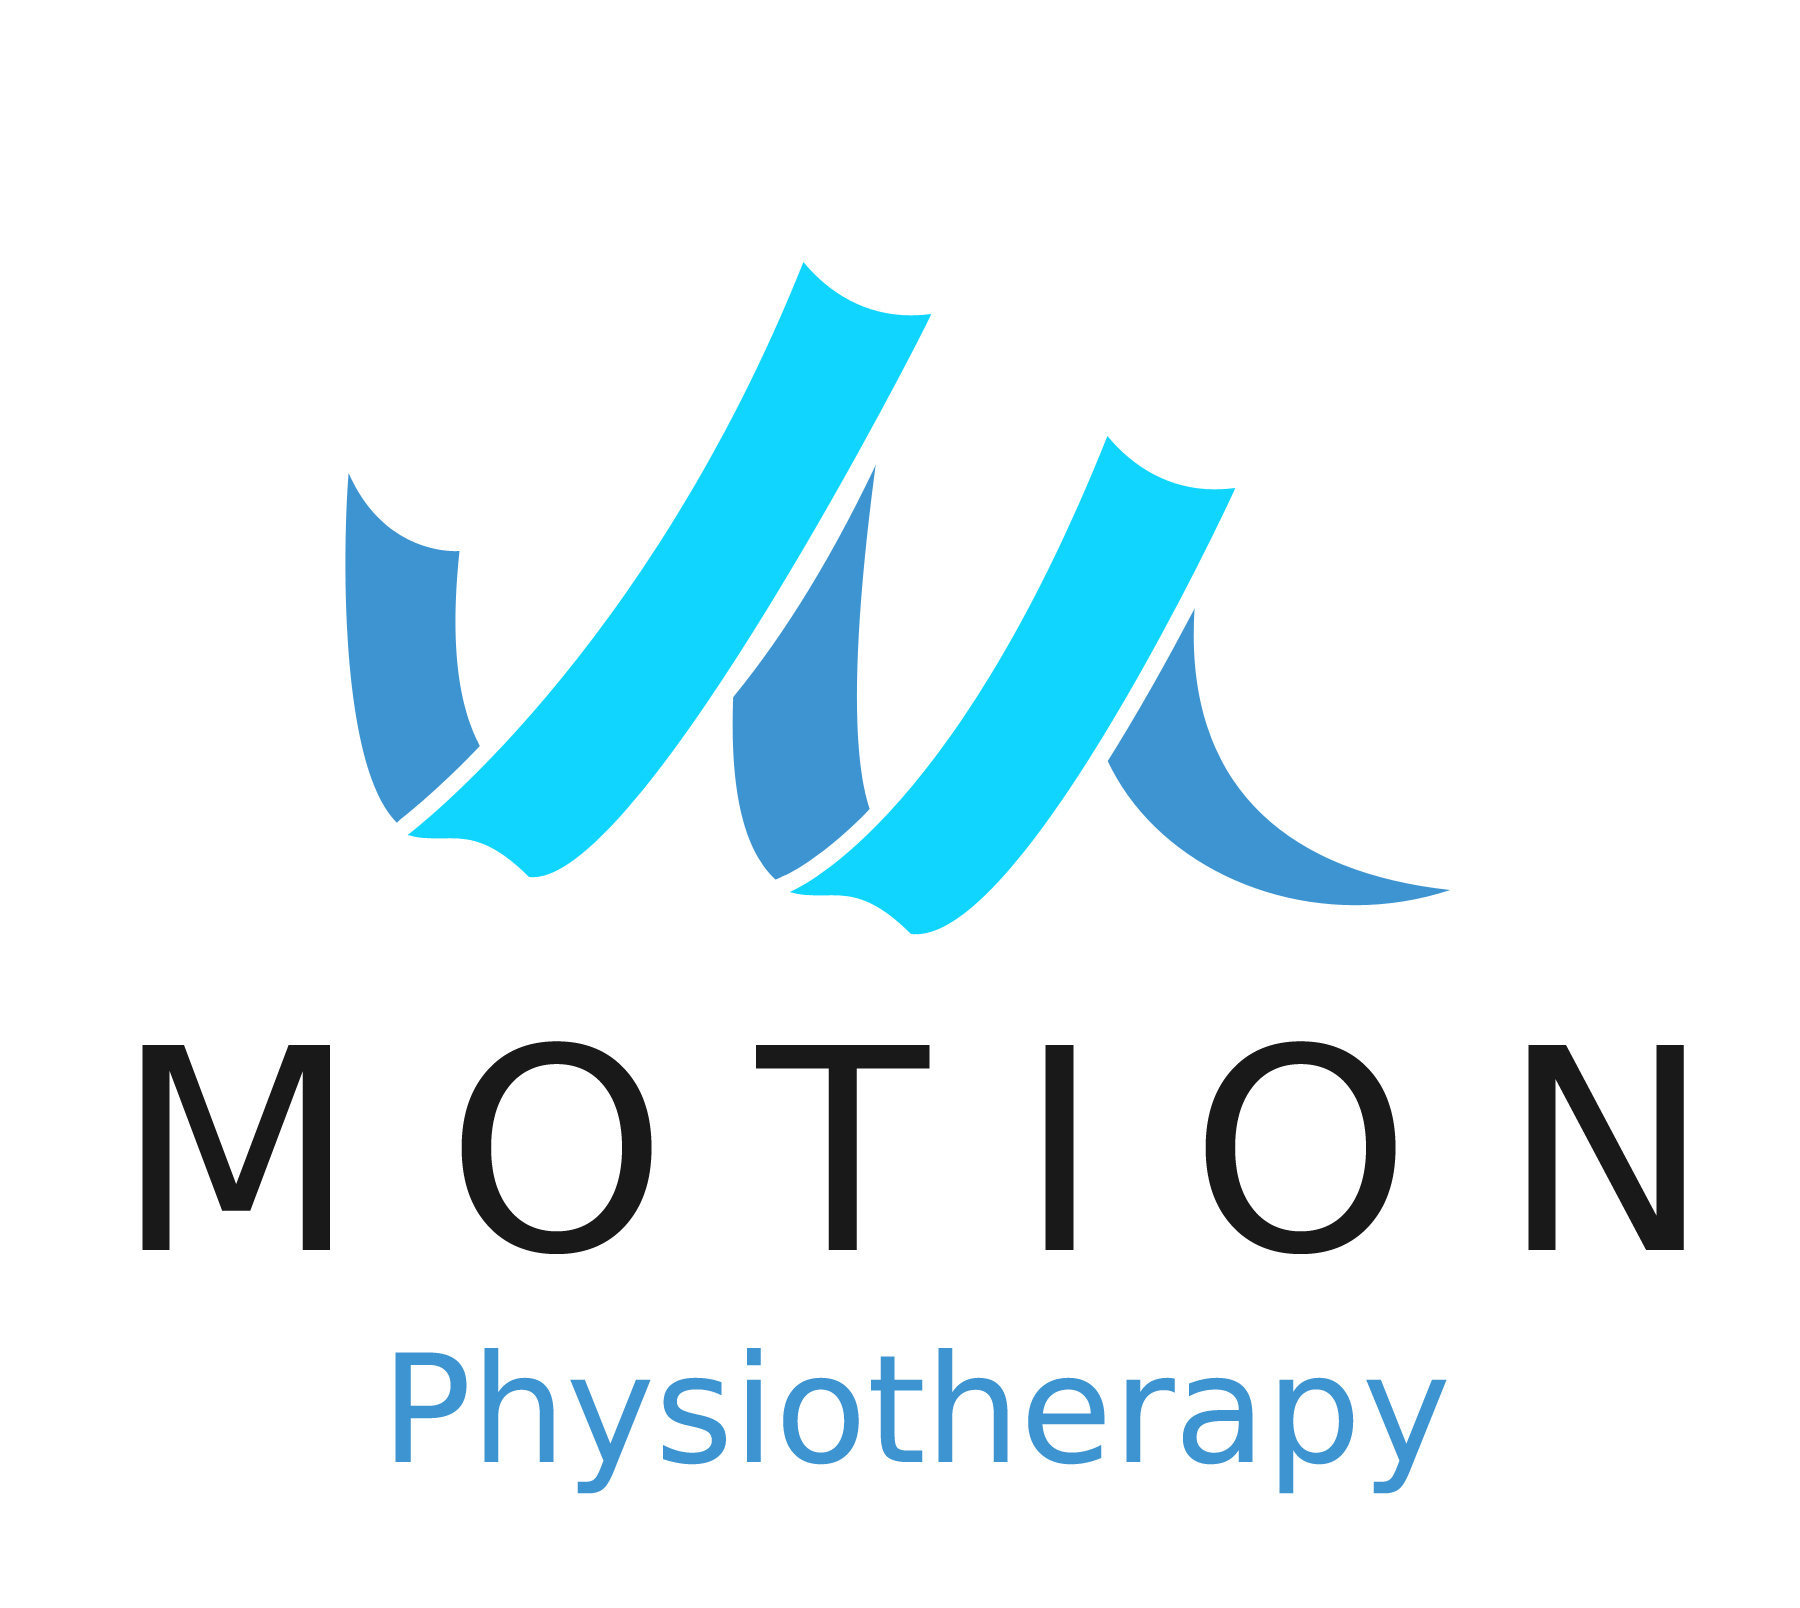 Motion Physiotherapy company logo